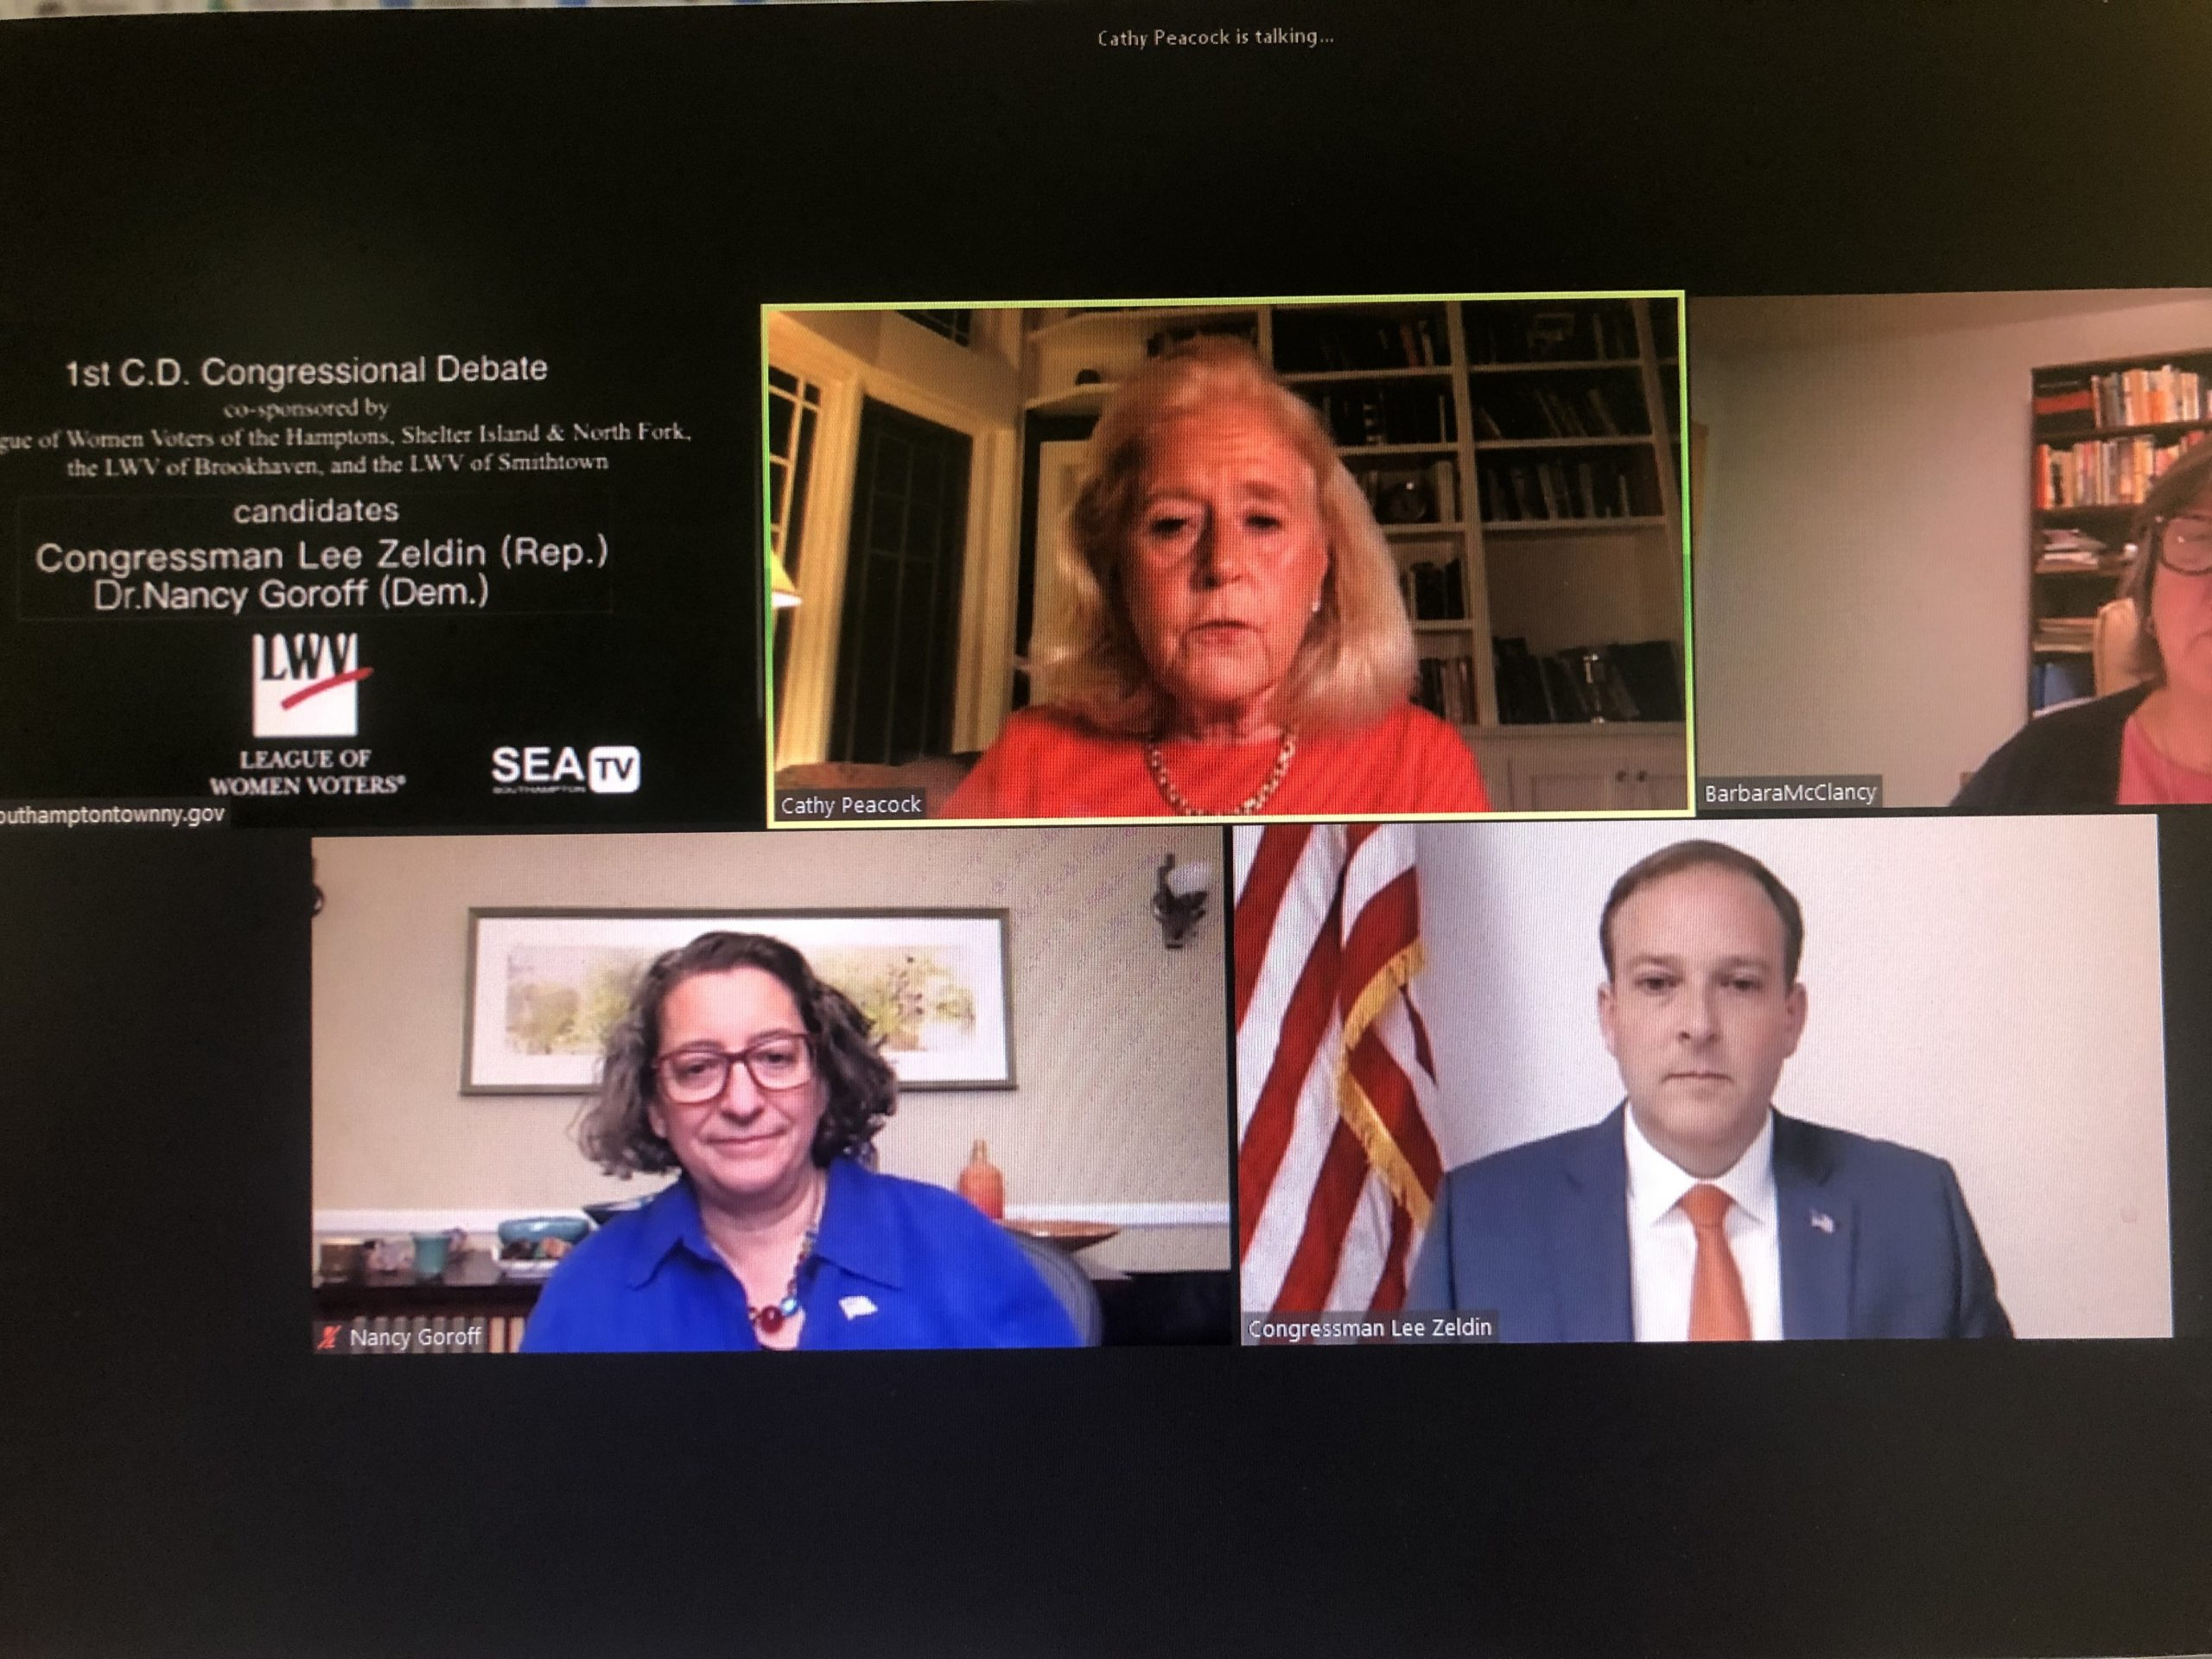 Dr. Nancy Goroff and U.S. Representative Lee Zeldin faced off in a debate on Monday evening on SeaTV.